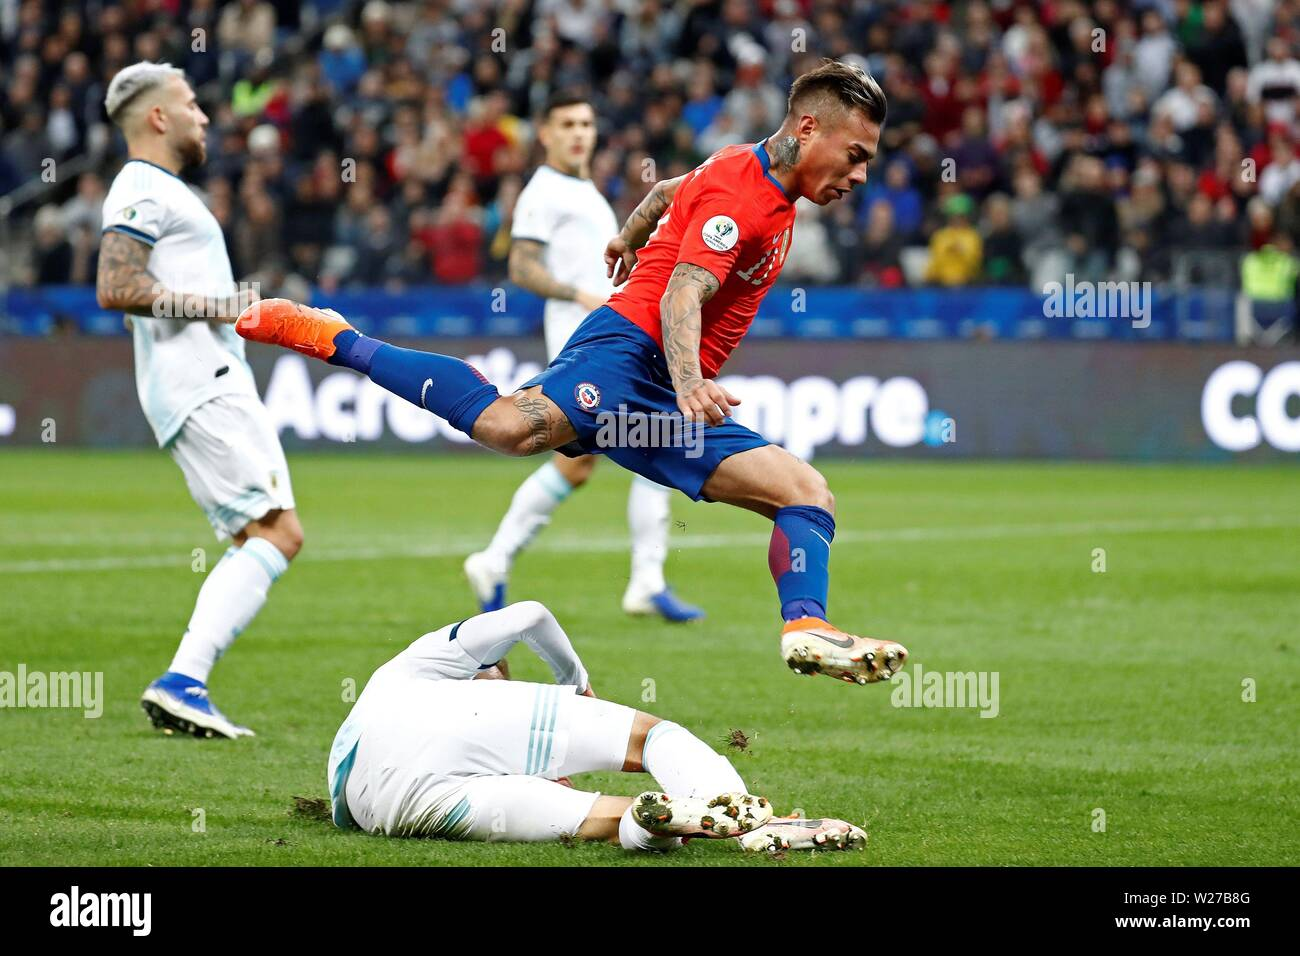 Sao Paulo, Brazil. 06th July, 2019. Chilean Eduardo Vargas in action, during the Copa America 2019 3rd place soccer match between Argentina and Chile, at Arena Corinthians Stadium in Sao Paulo, Brazil, 6 July 2019. Credit: Sebastiao Moreira/EFE/Alamy Live News Stock Photo